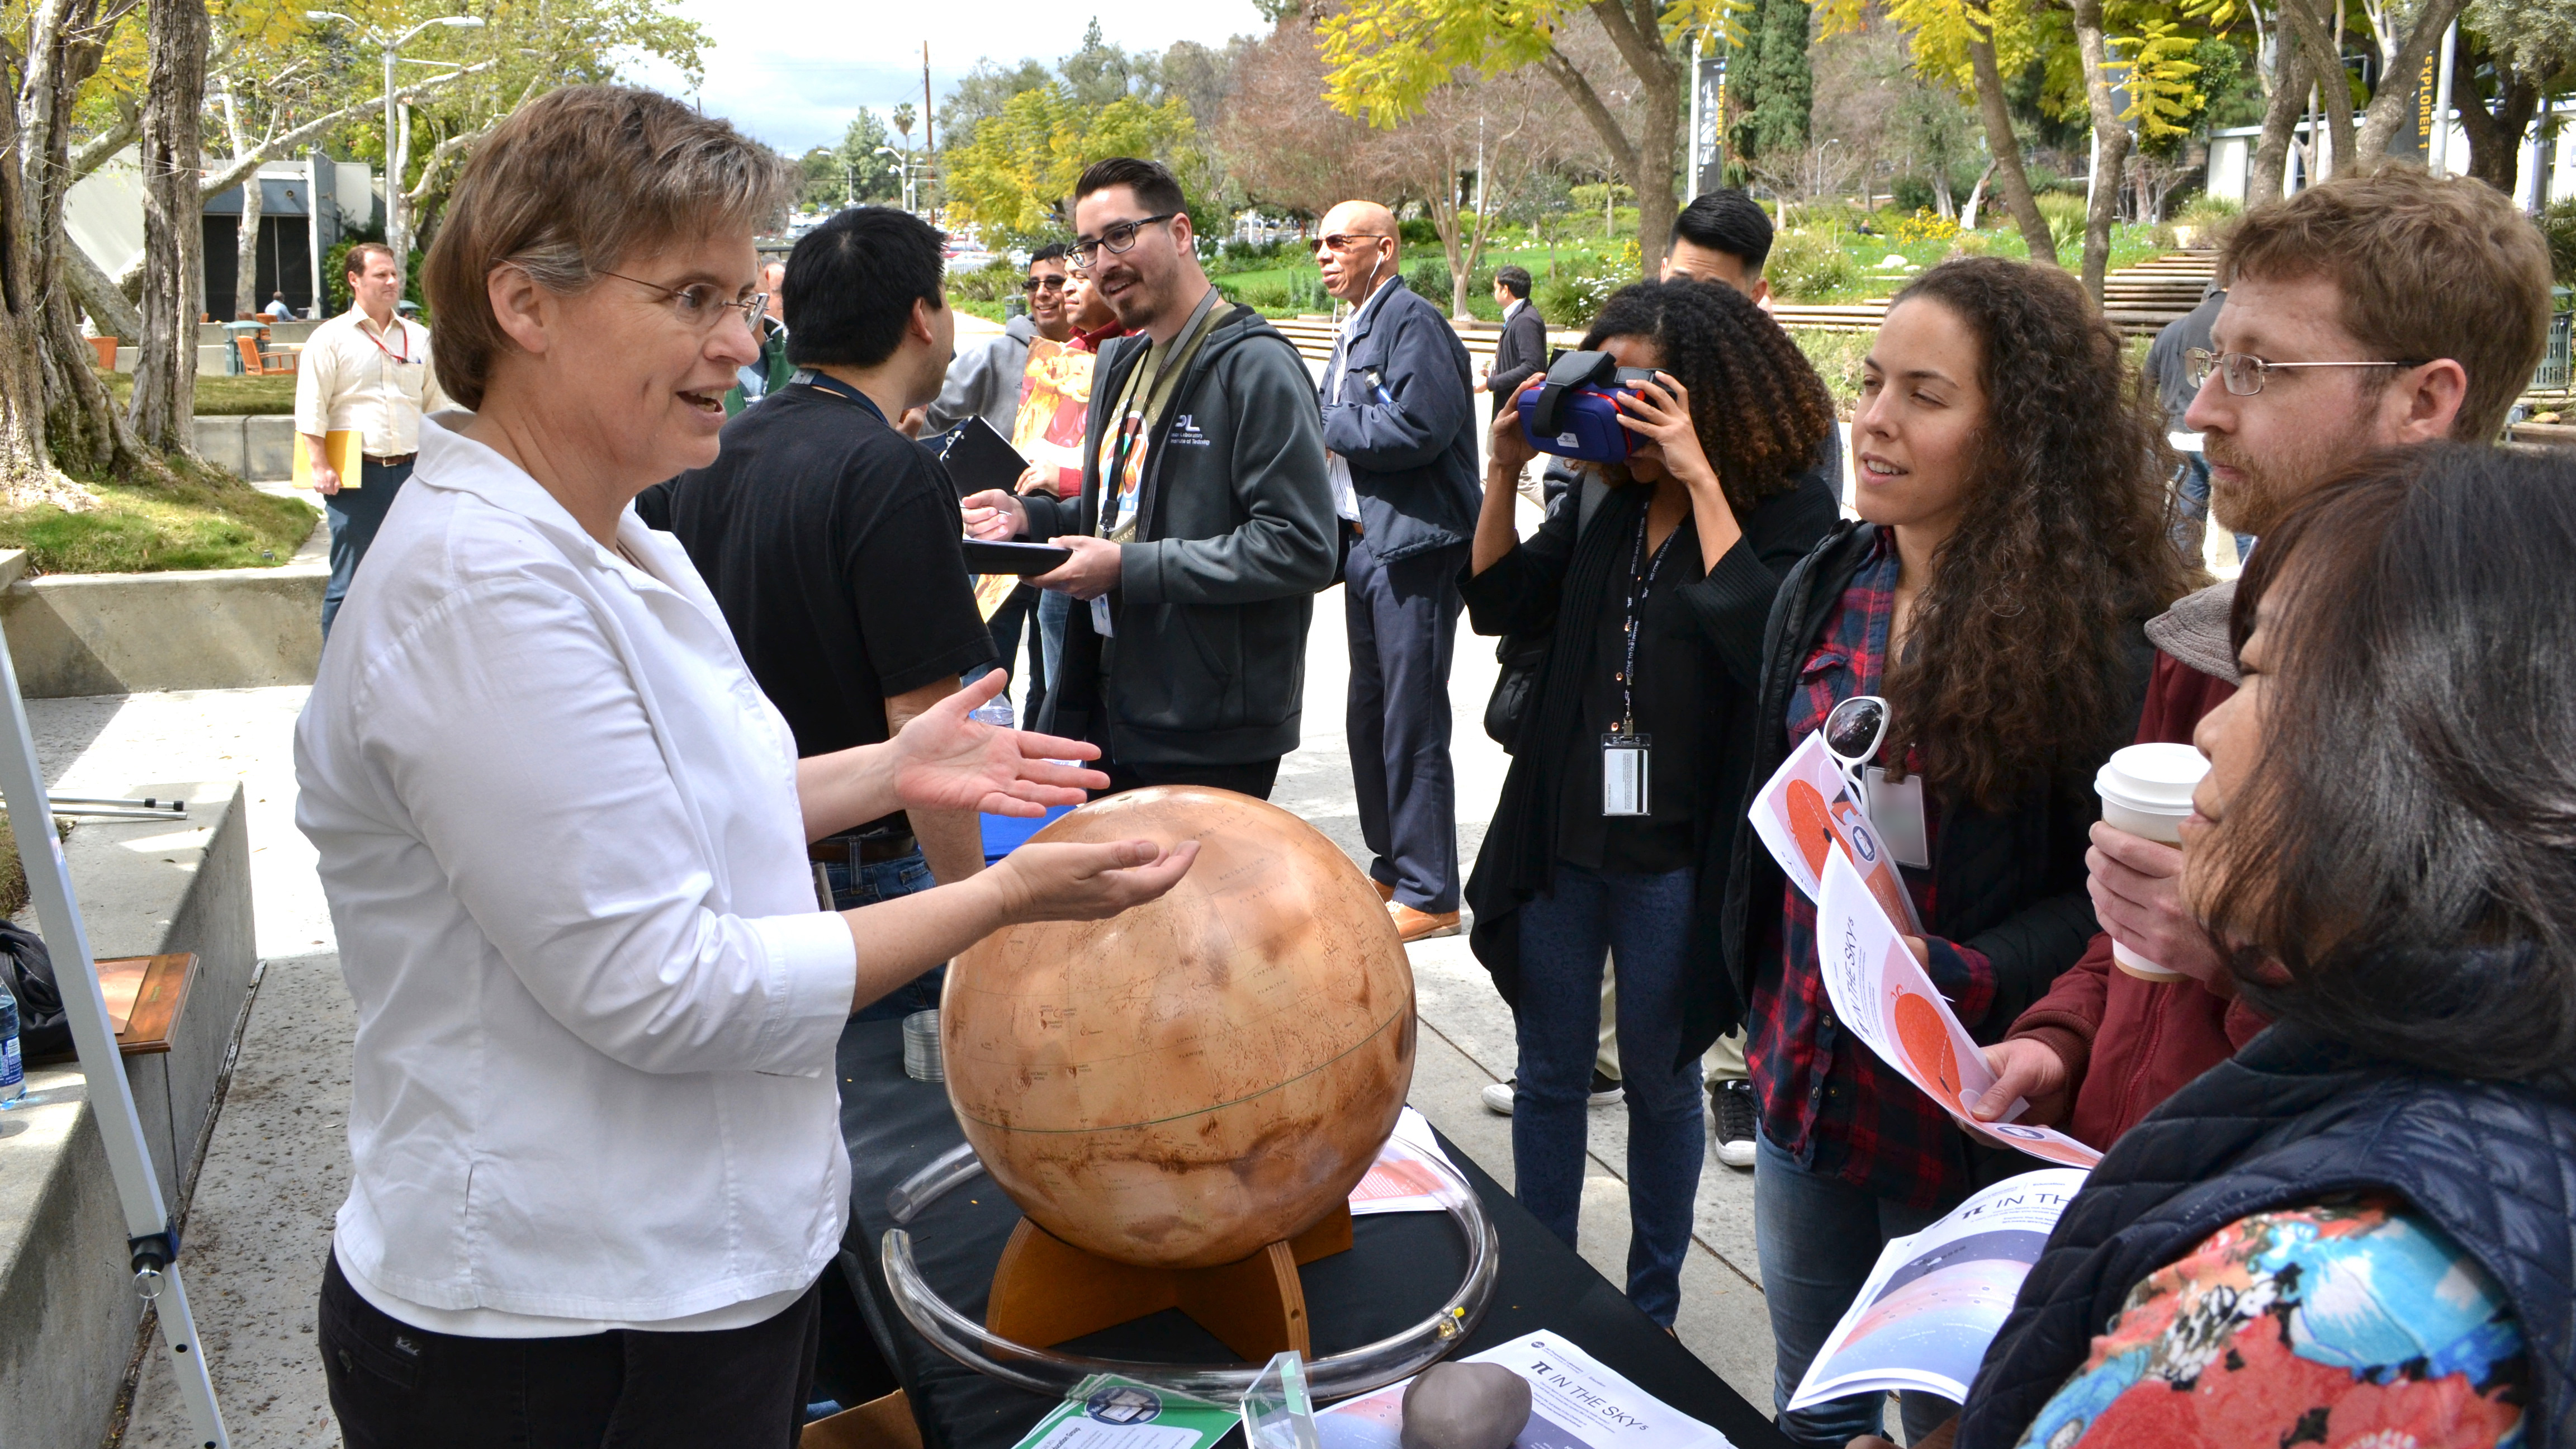 Ota Lutz stands behind a tabletop Mars globe and speaks with a group of people